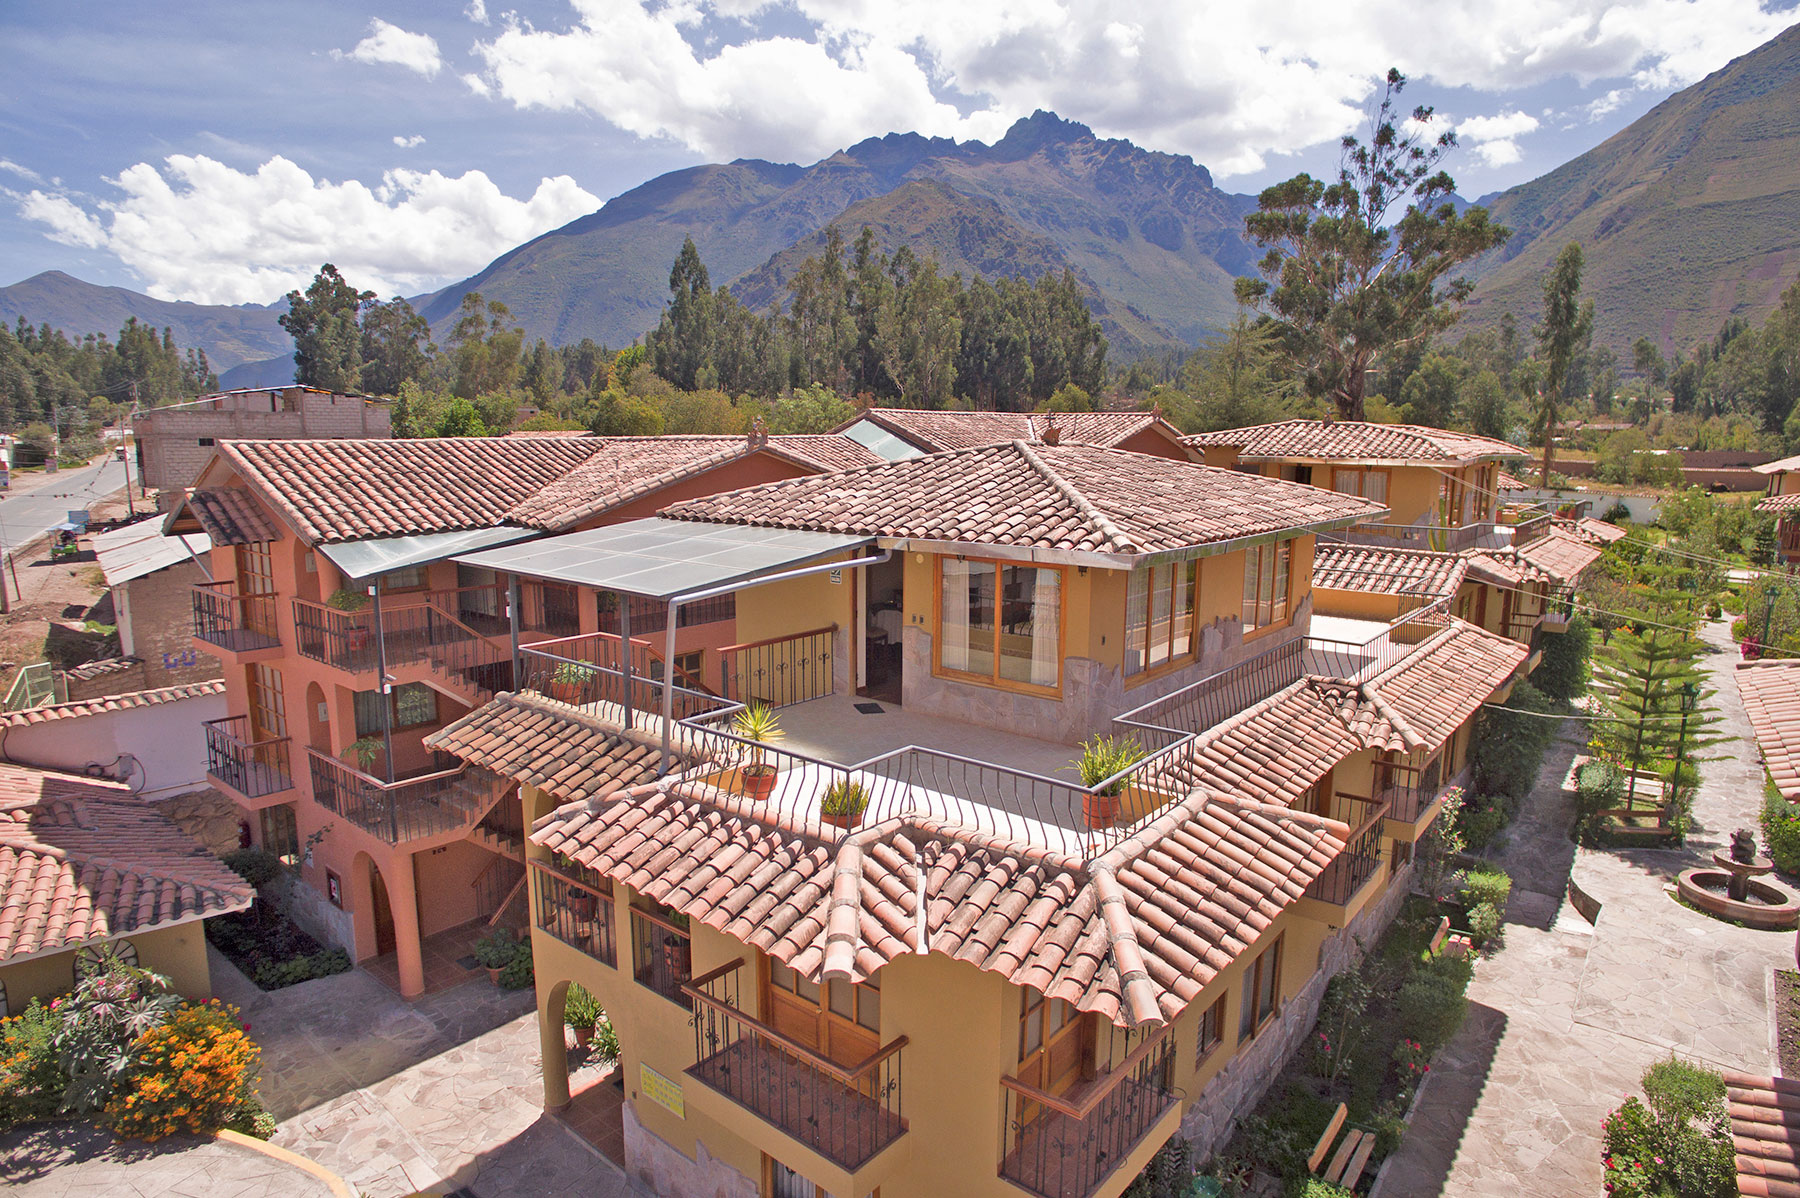 Mabey Valle Sagrado